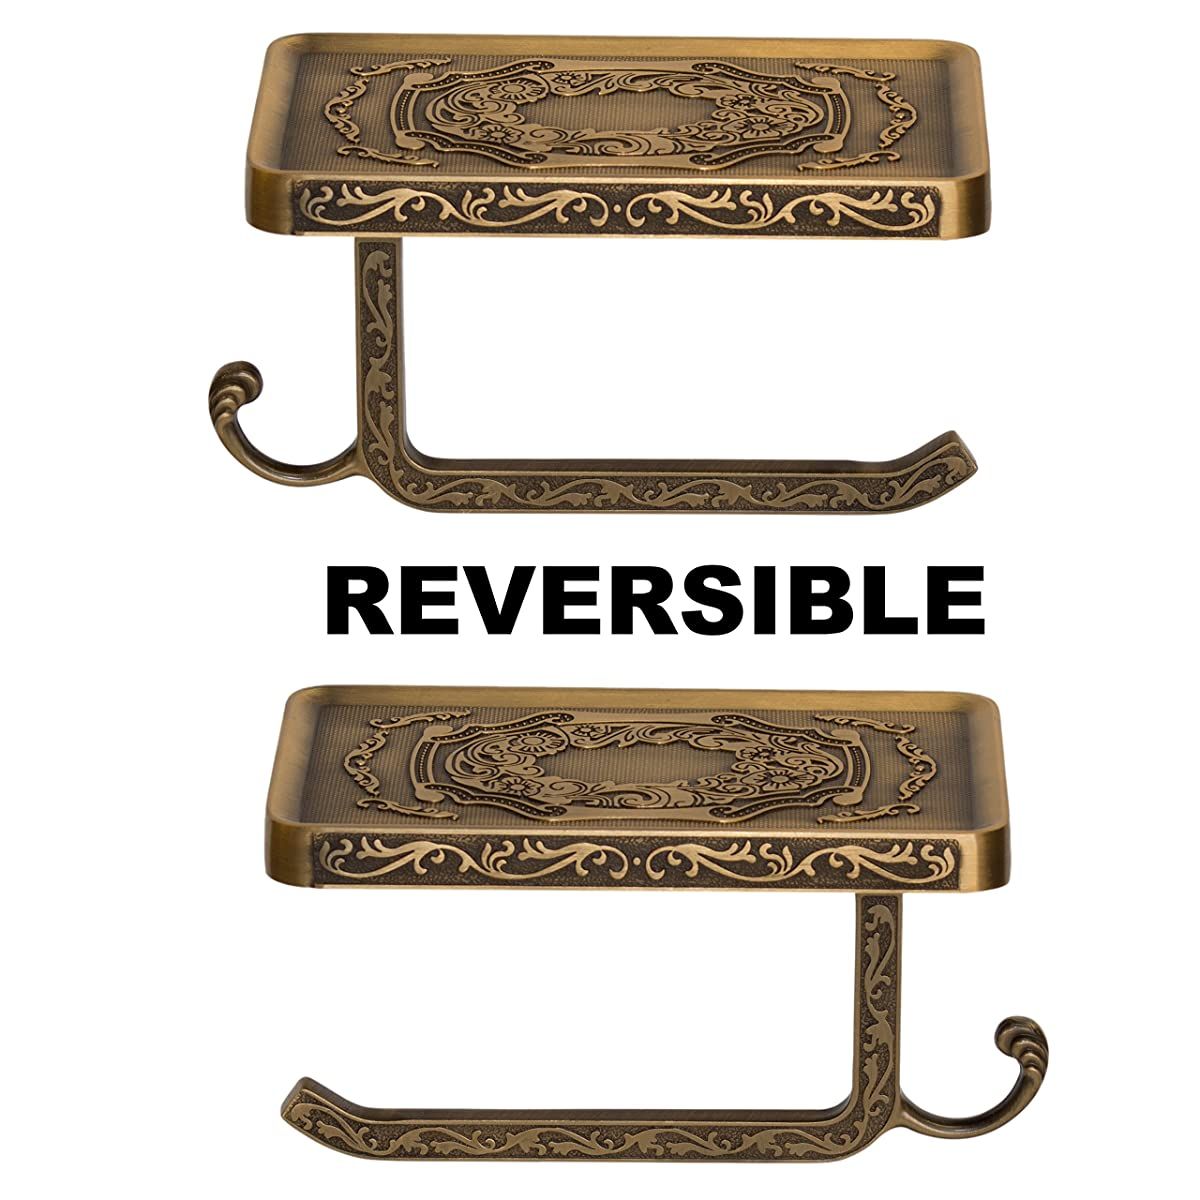 Reversible Bathroom Toilet Paper Holder with Phone Shelf and Hook, Vintage Decor Style (Bronze)